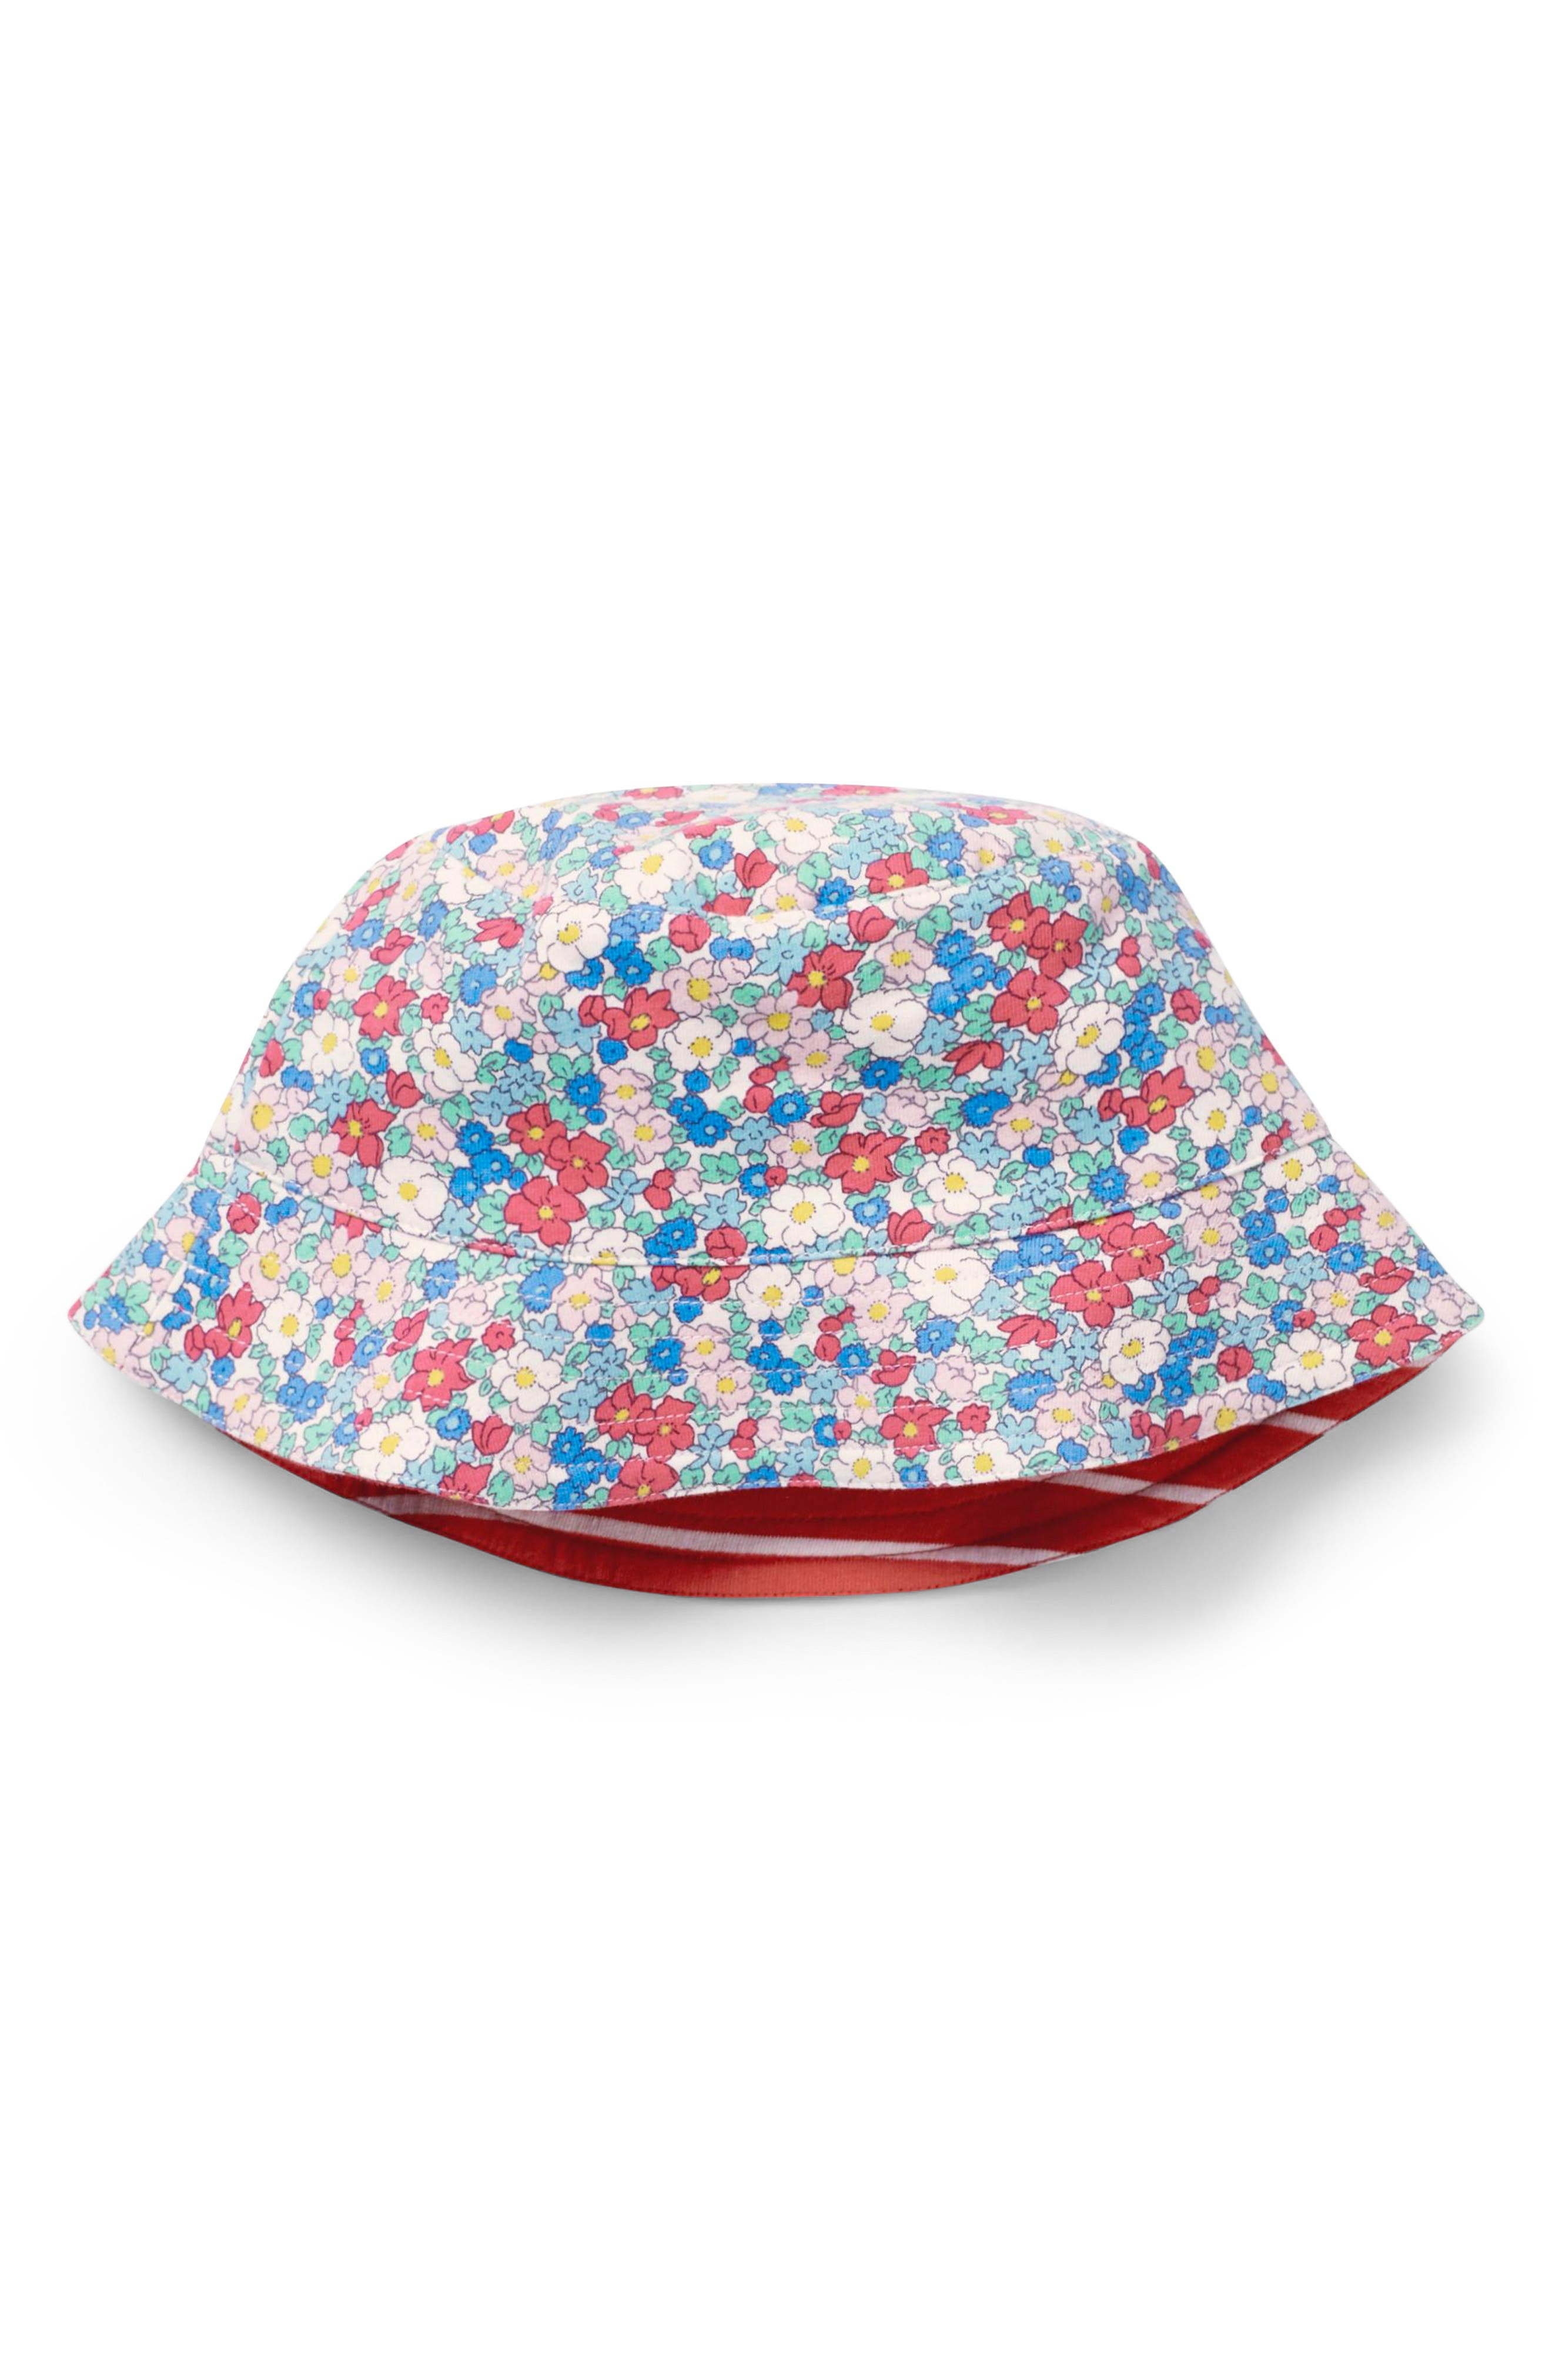 Jersey Reversible Sun Hat,                         Main,                         color, Strawberry Split Pink Floral